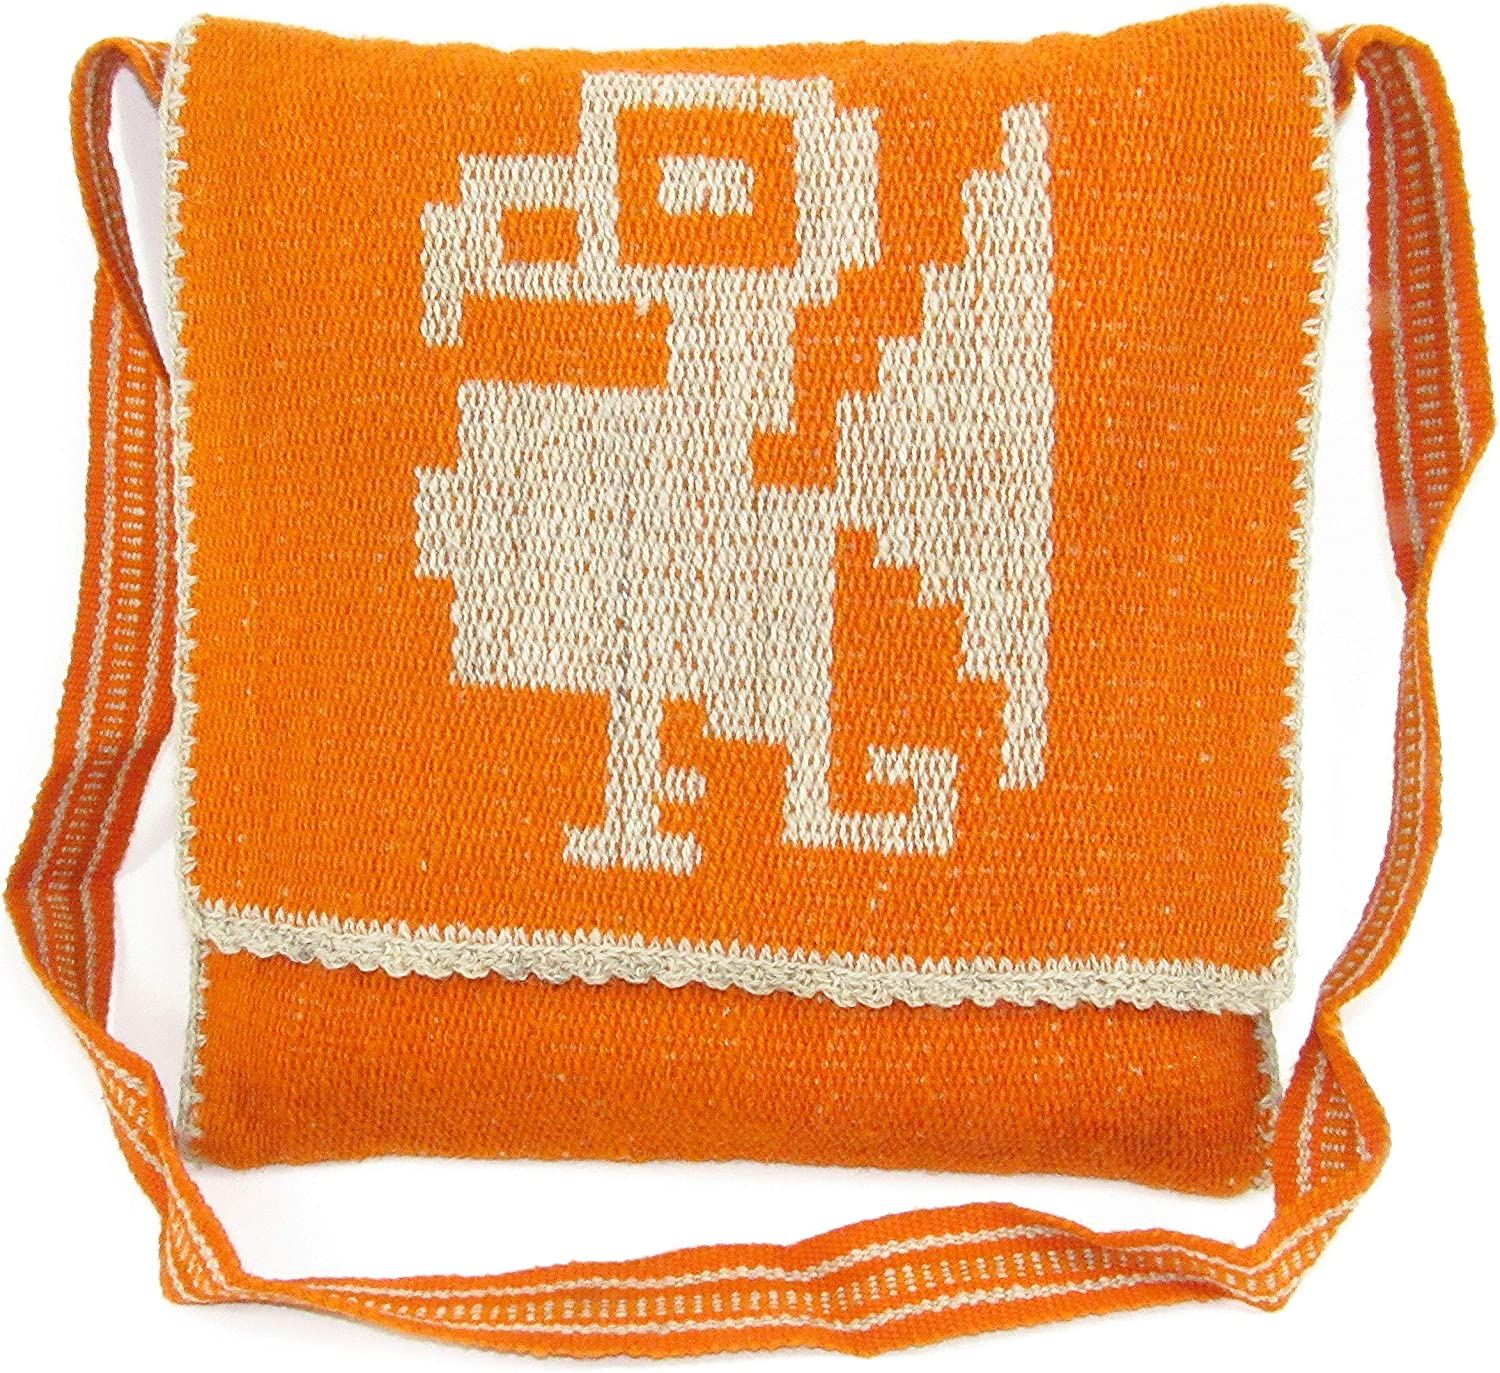 Bohemian Vintage Crossbody Handbag Handwoven Sheep Wool by MACHU PICCHU STORE 101302